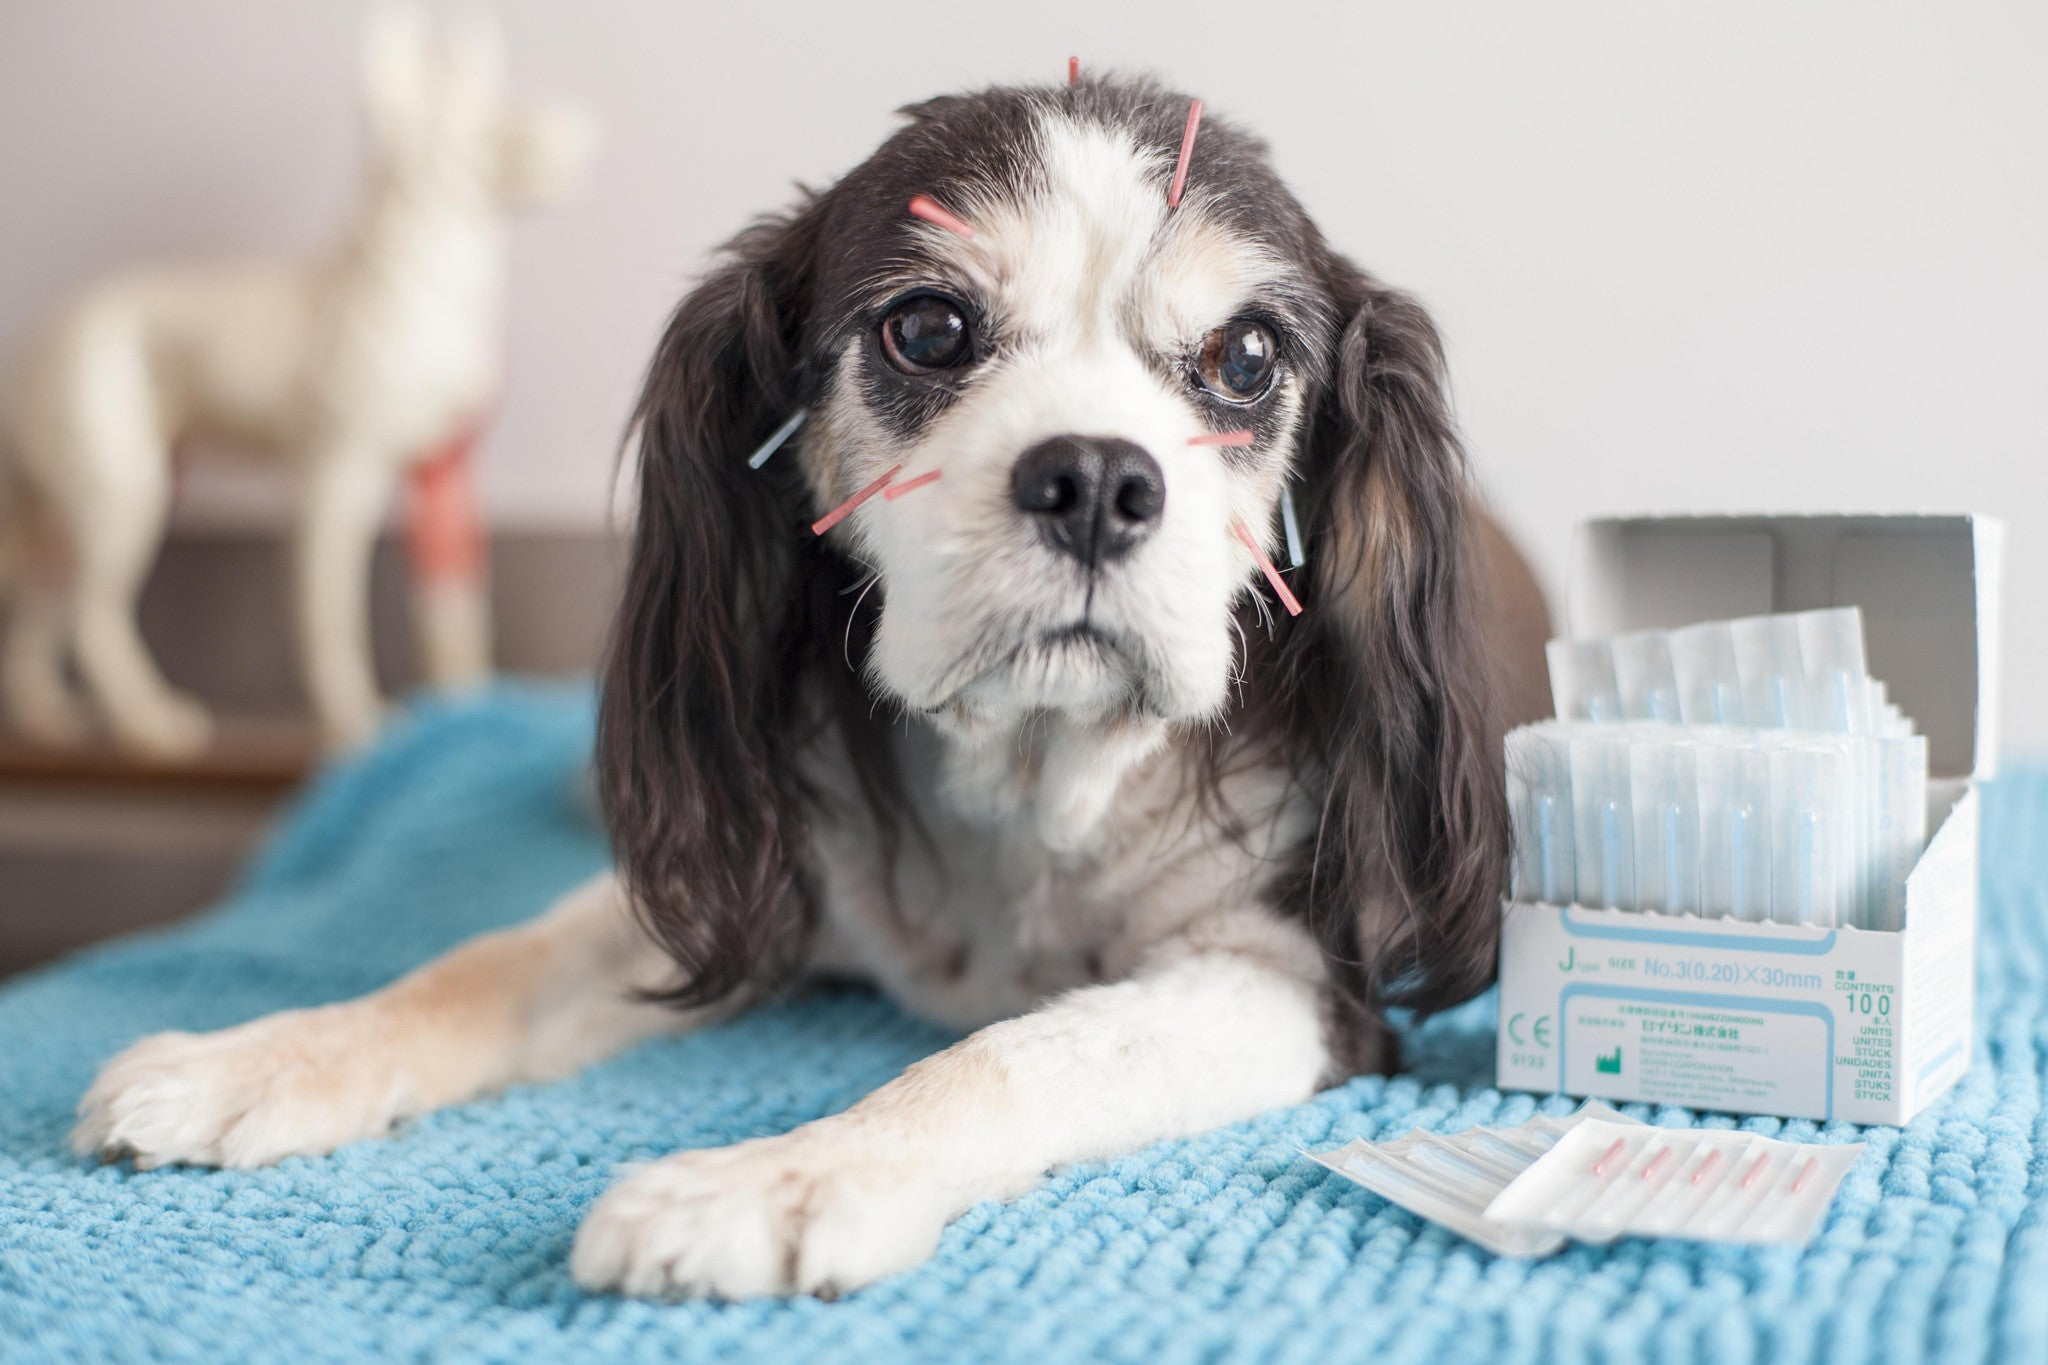 Acupuncture for your dog